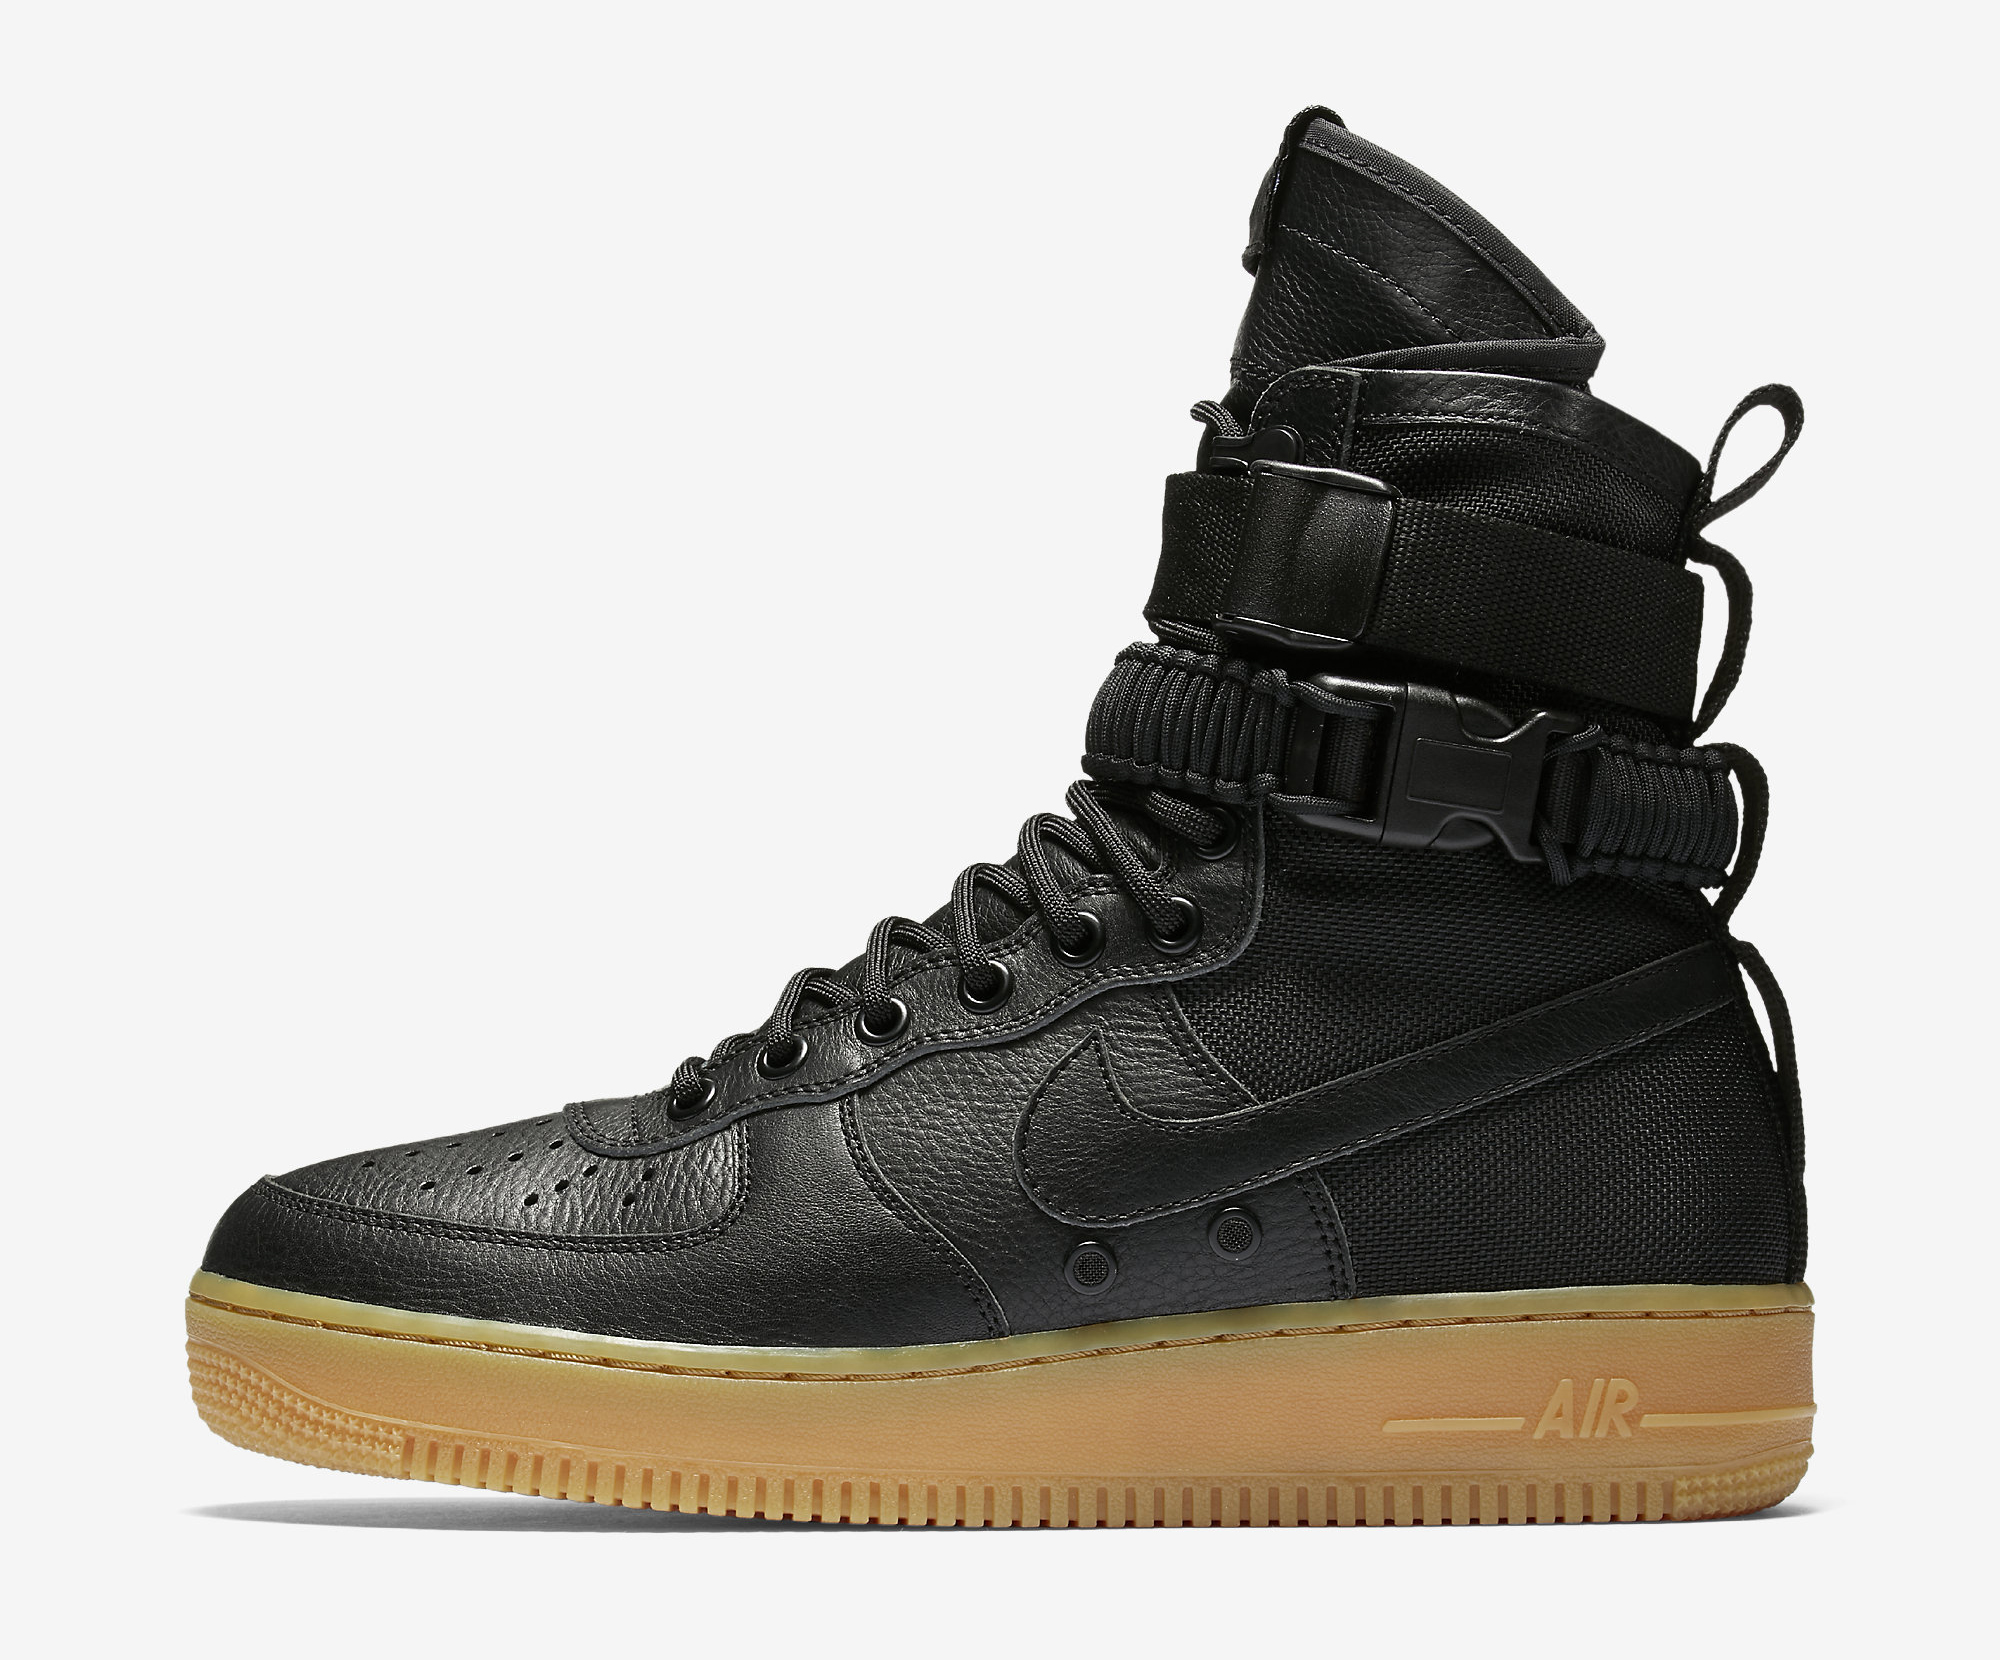 nike special field air force 1 release date sole collector. Black Bedroom Furniture Sets. Home Design Ideas